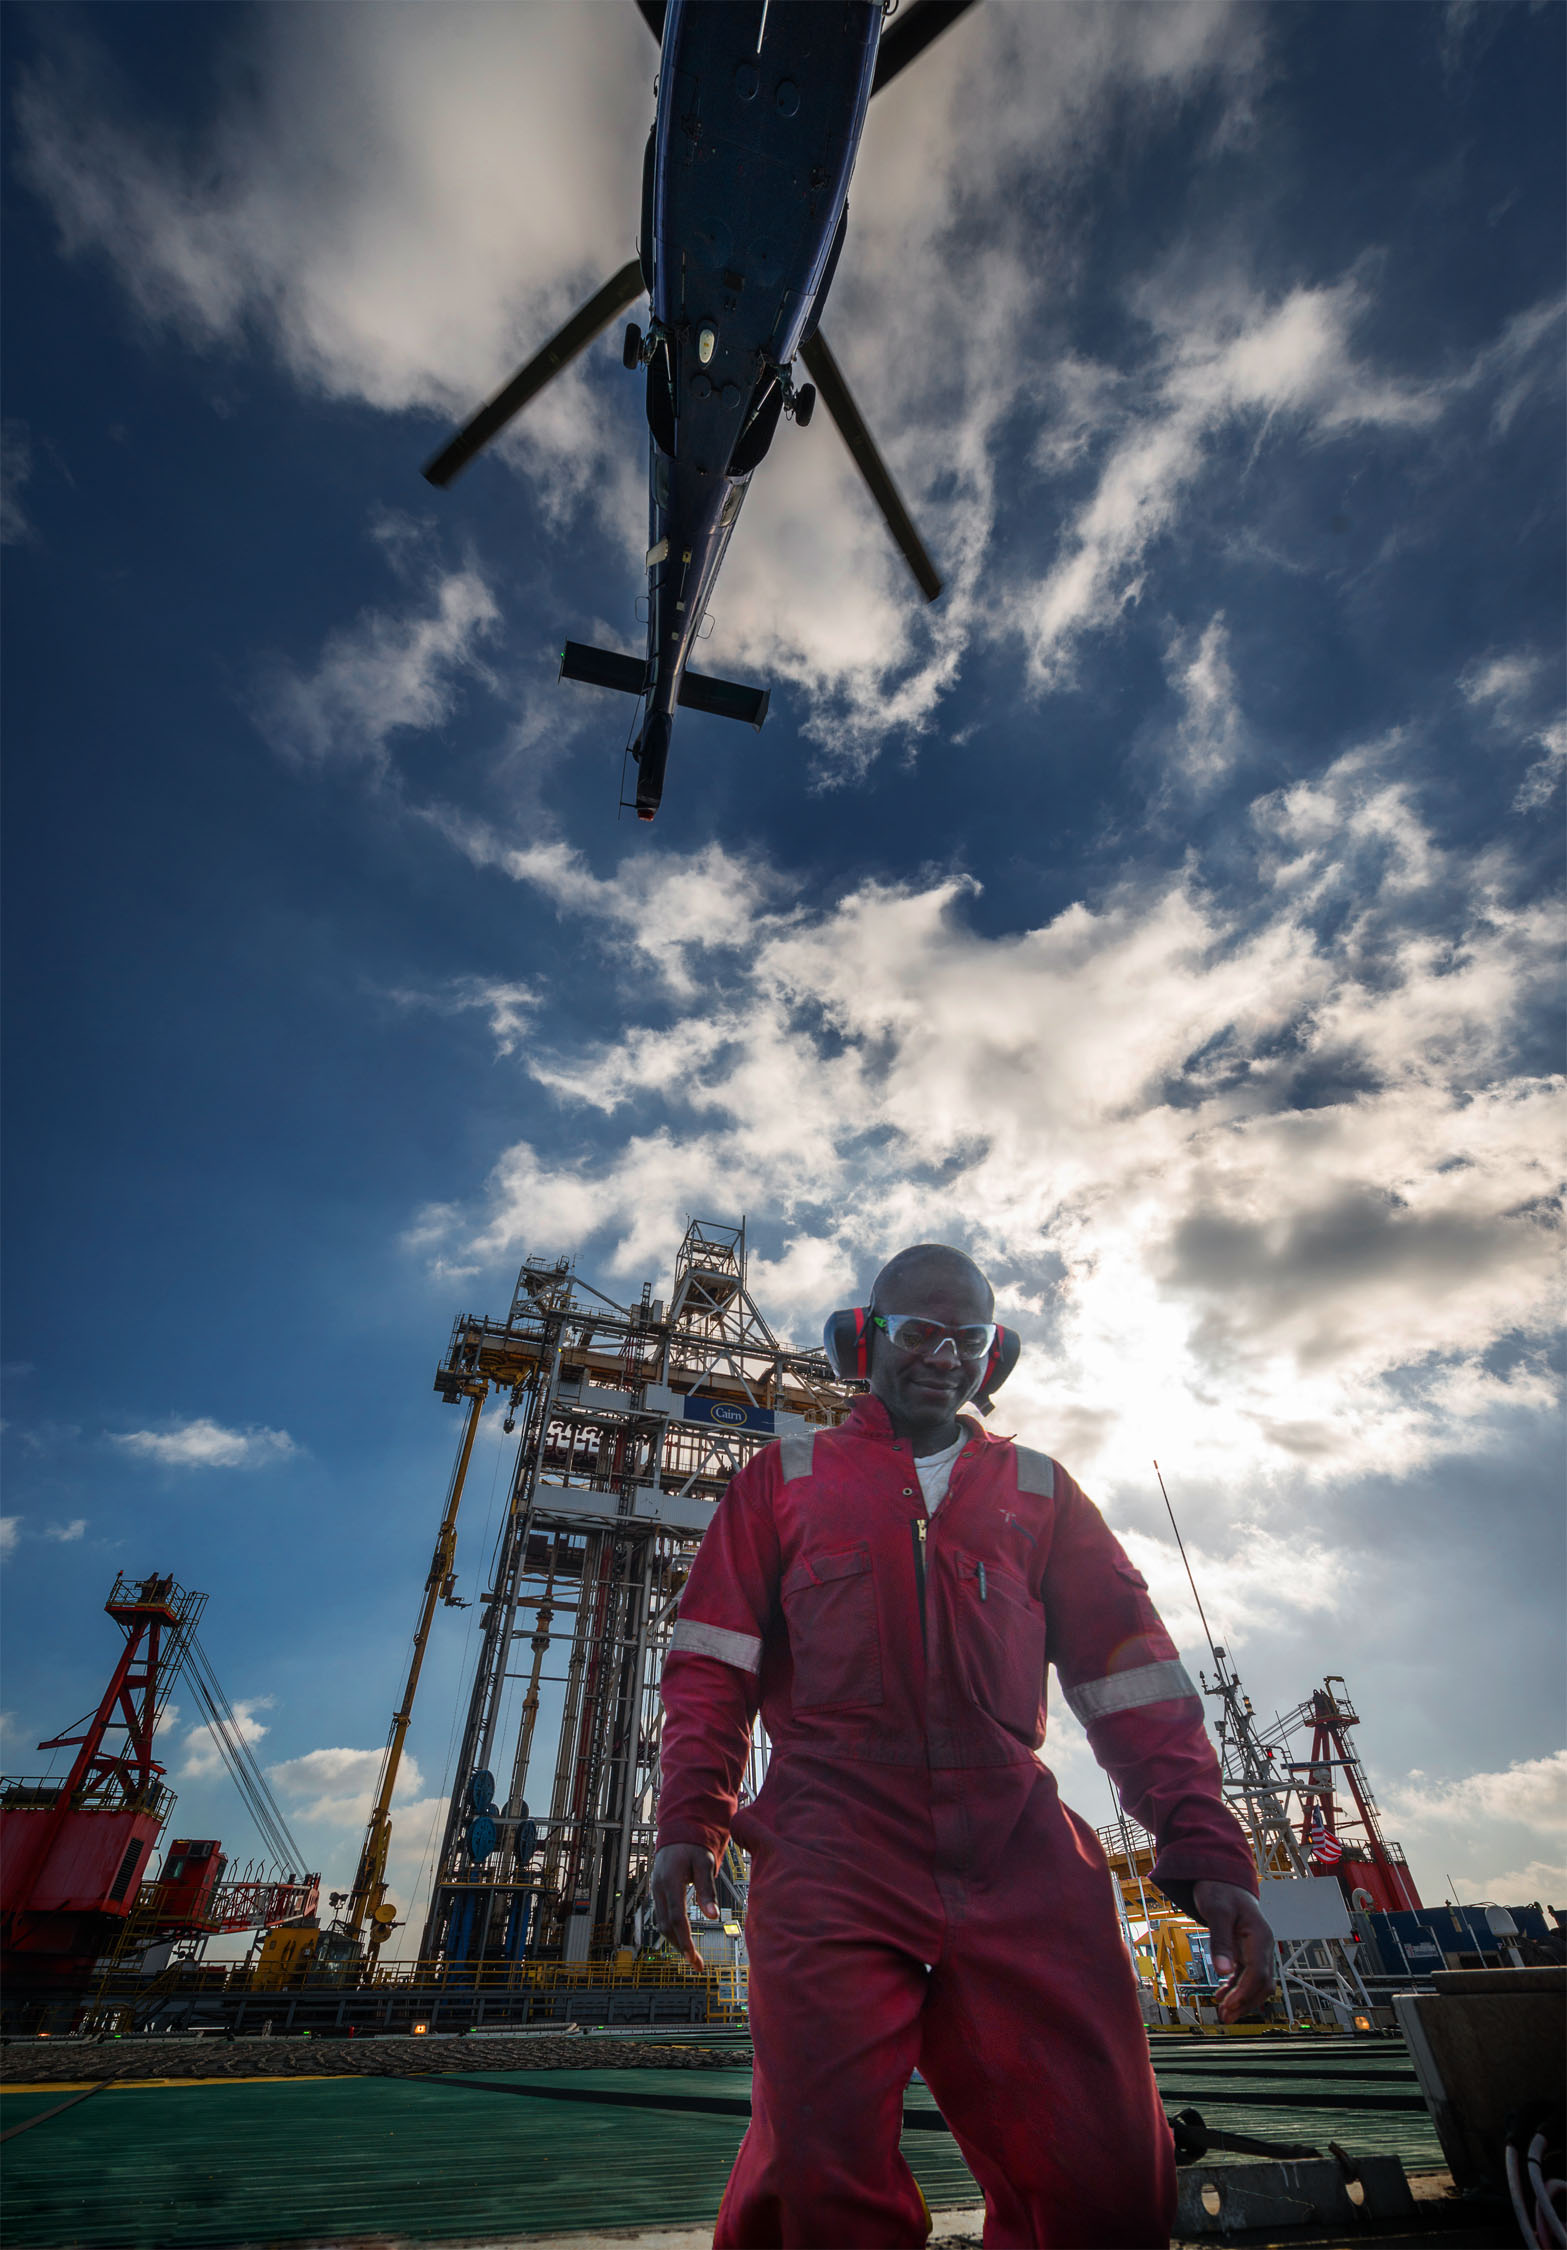 Man in red fire suit on oil rig with helicopter taking off